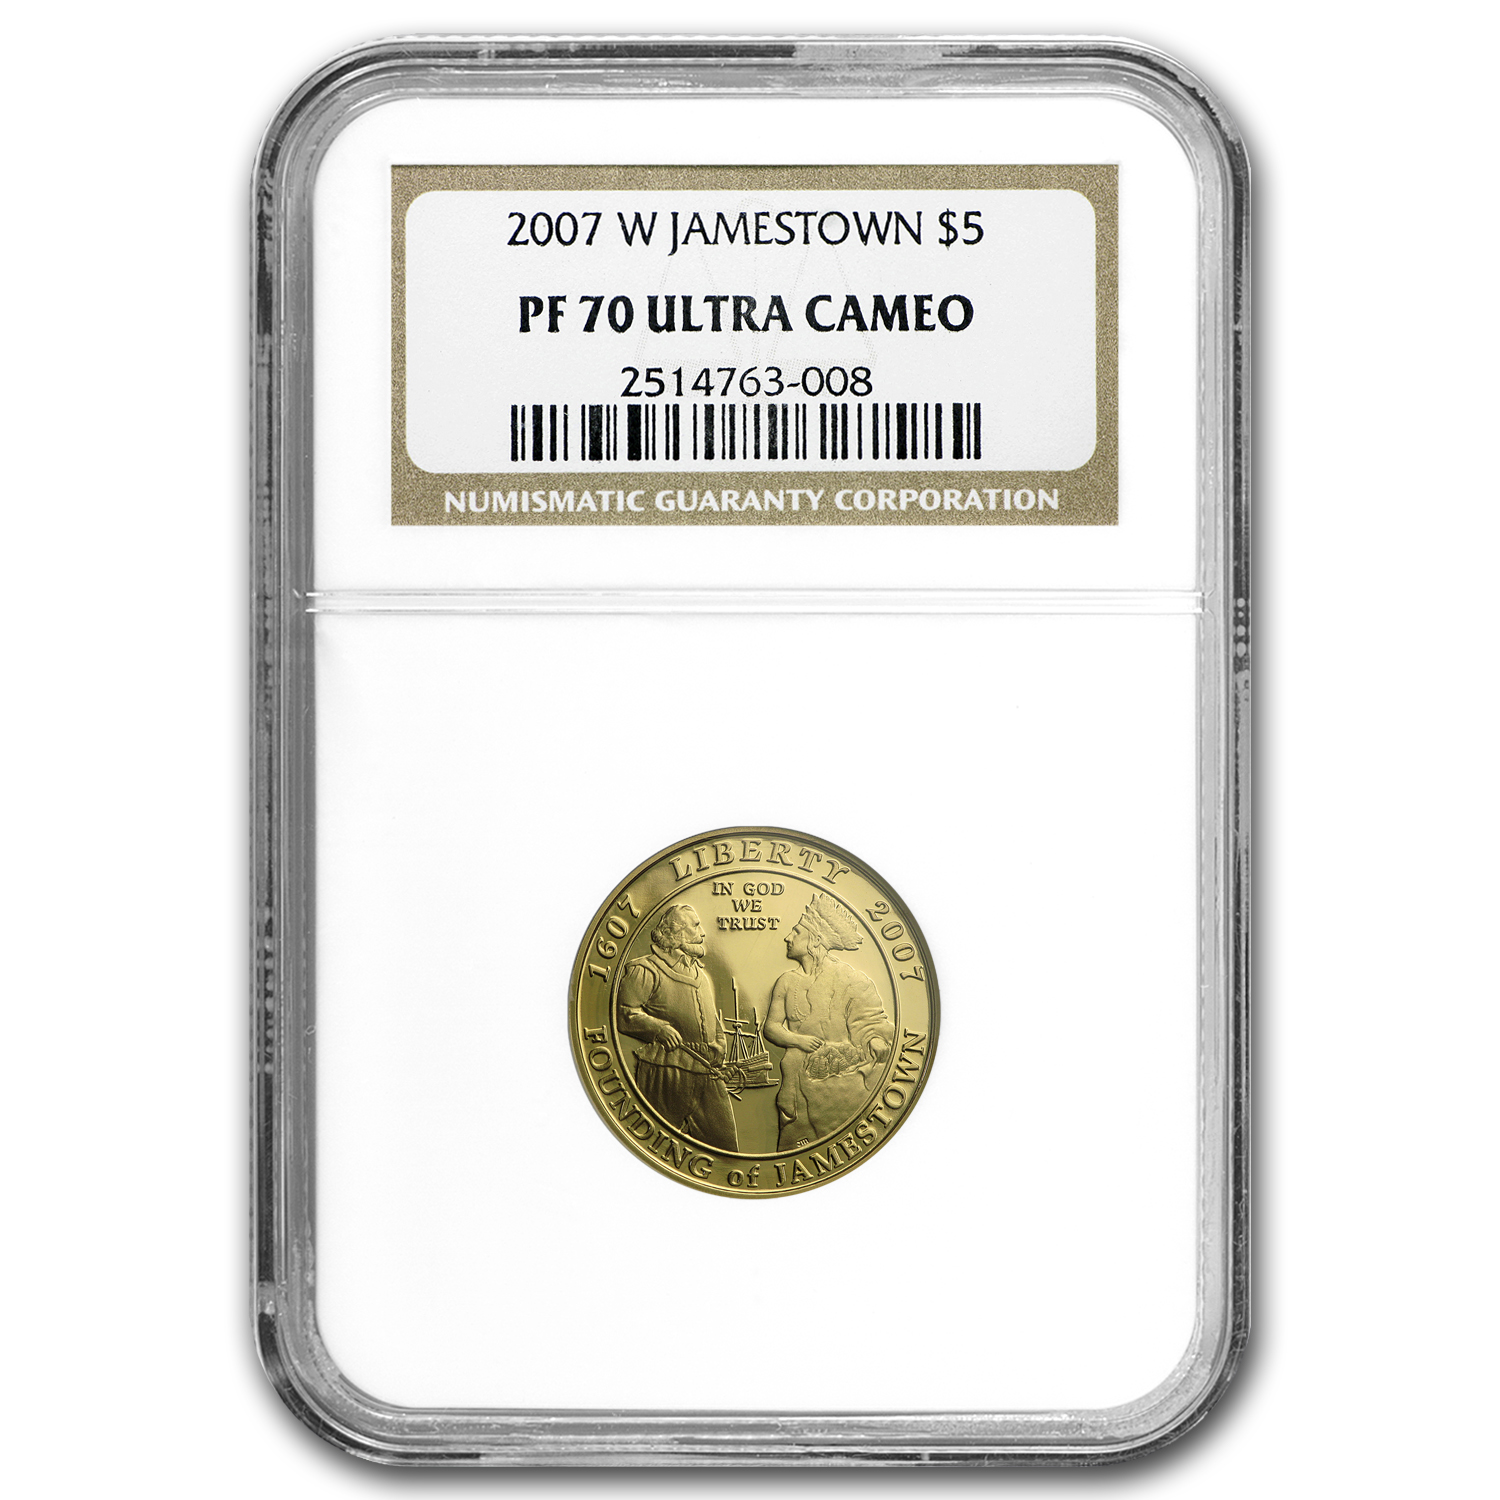 2007-W Jamestown - $5 Gold Commemorative - PF-70 UCAM NGC